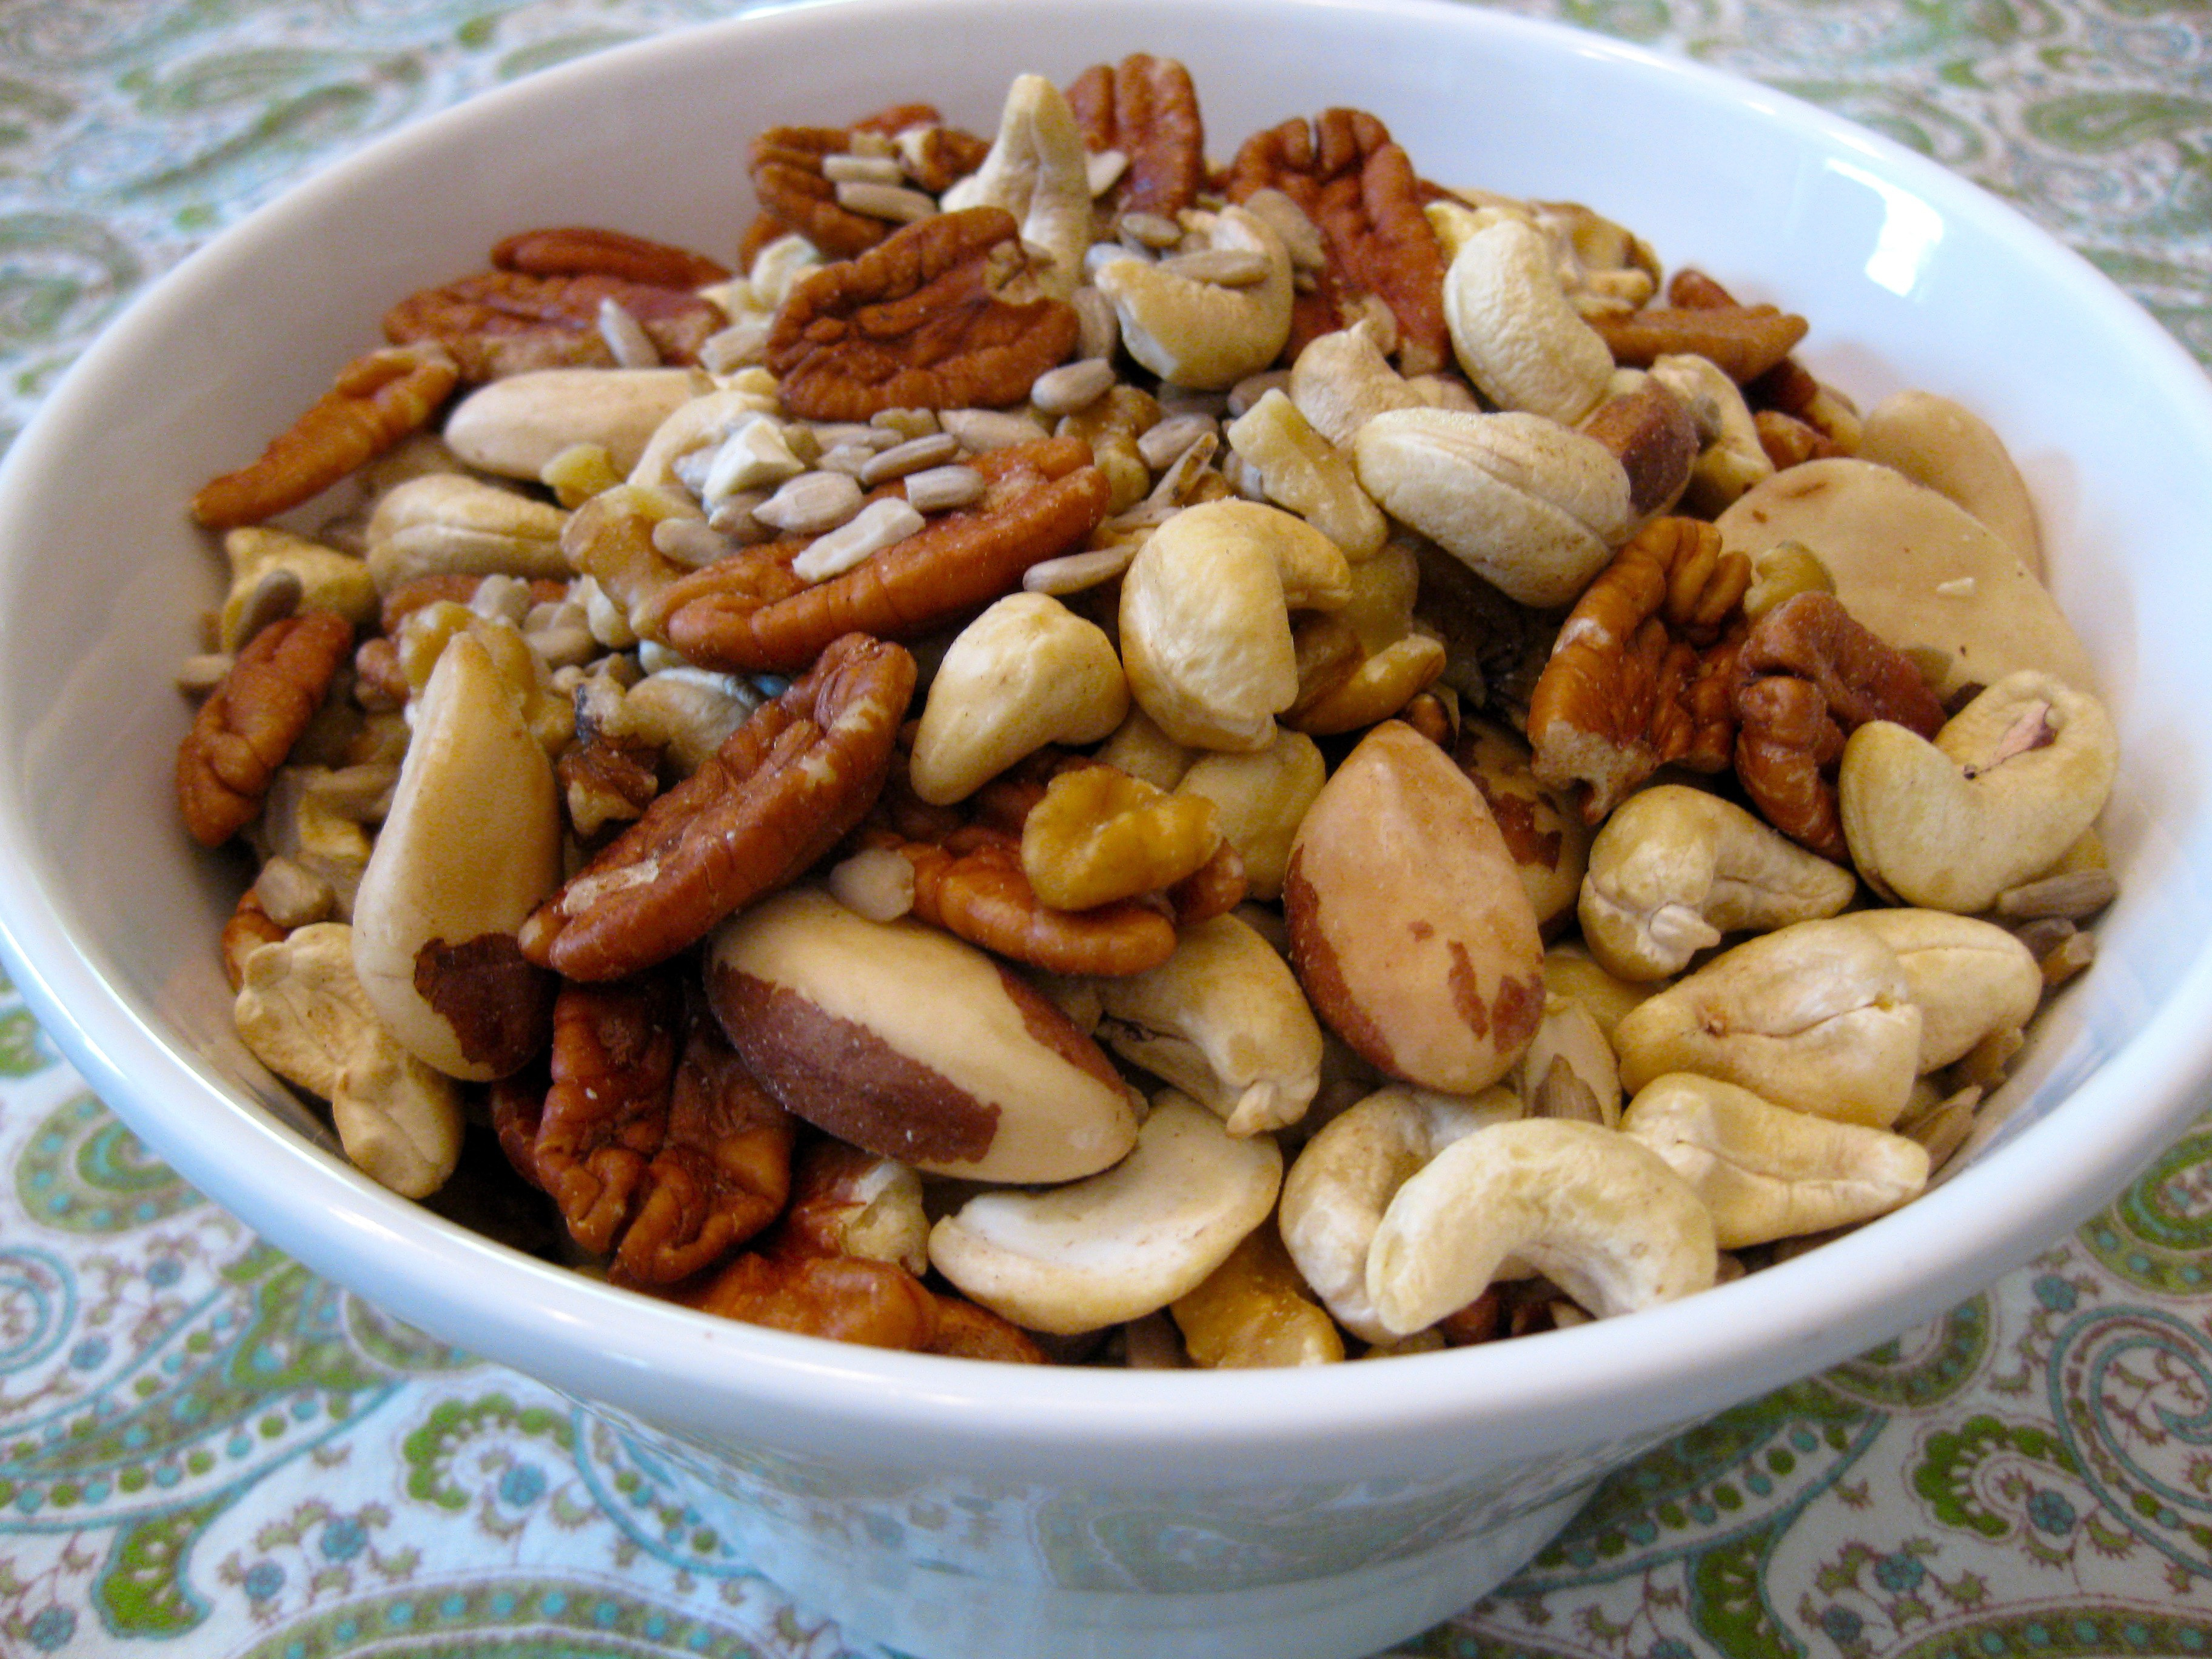 Pictures Of Nuts